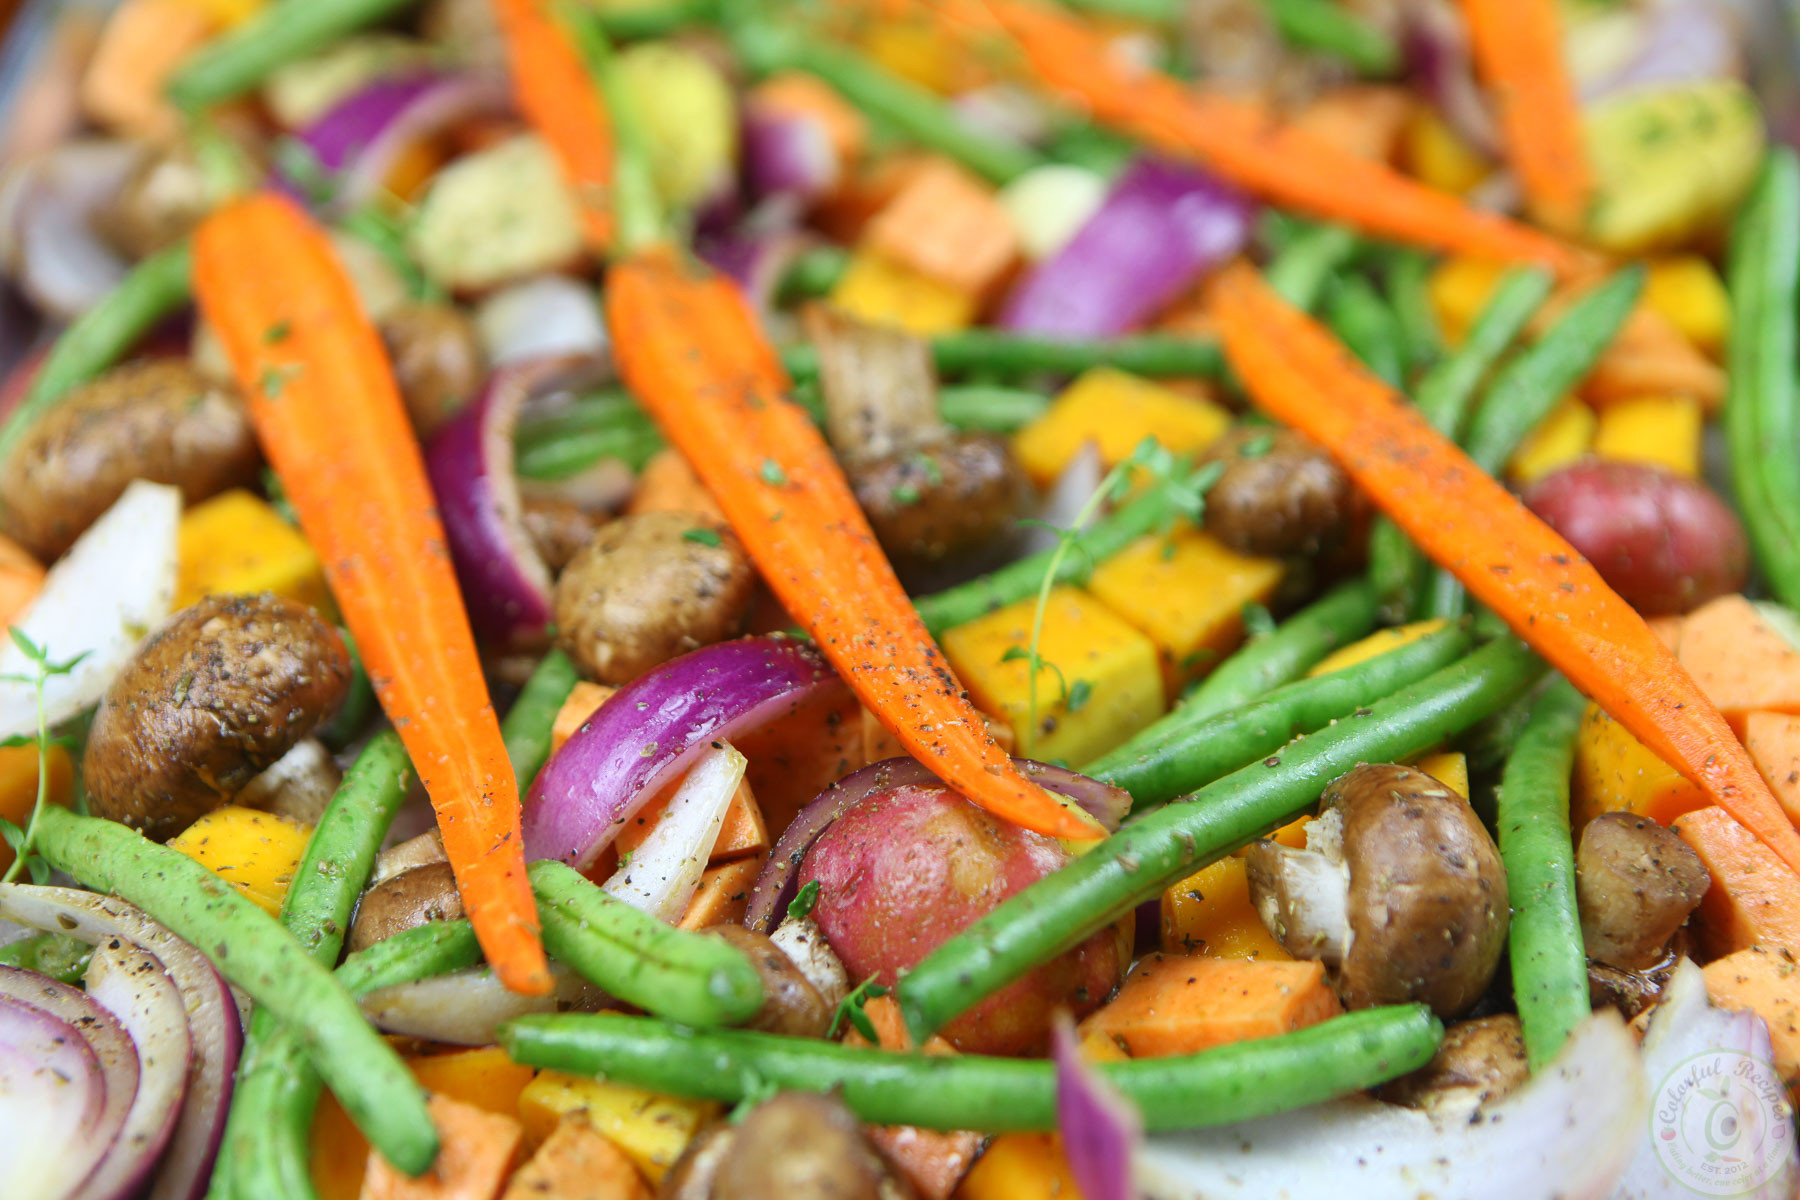 Roasted Fall Vegetables  Roasted Fall Ve ables Colorful Recipes